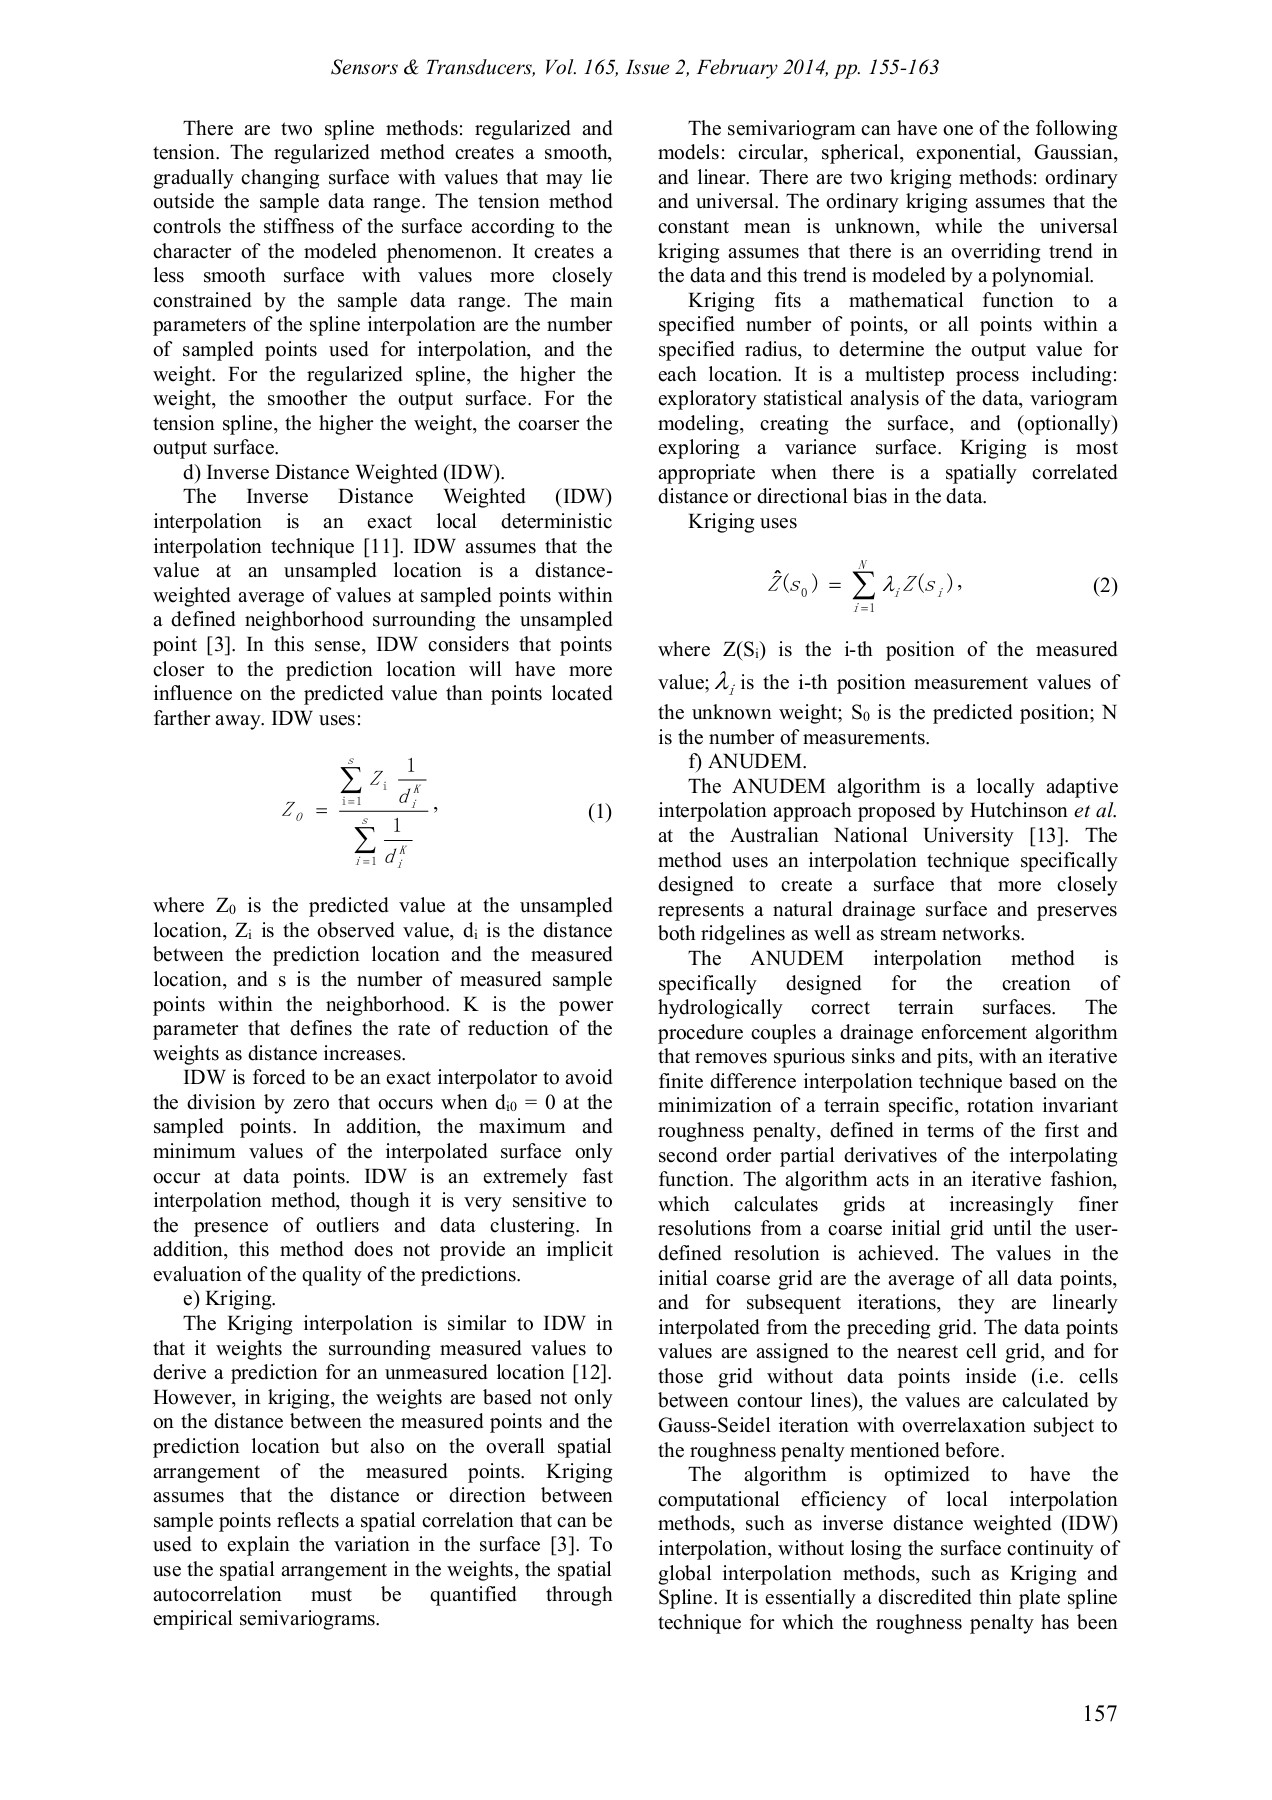 Comparative Analysis of Spatial Interpolation Methods: an     Pages